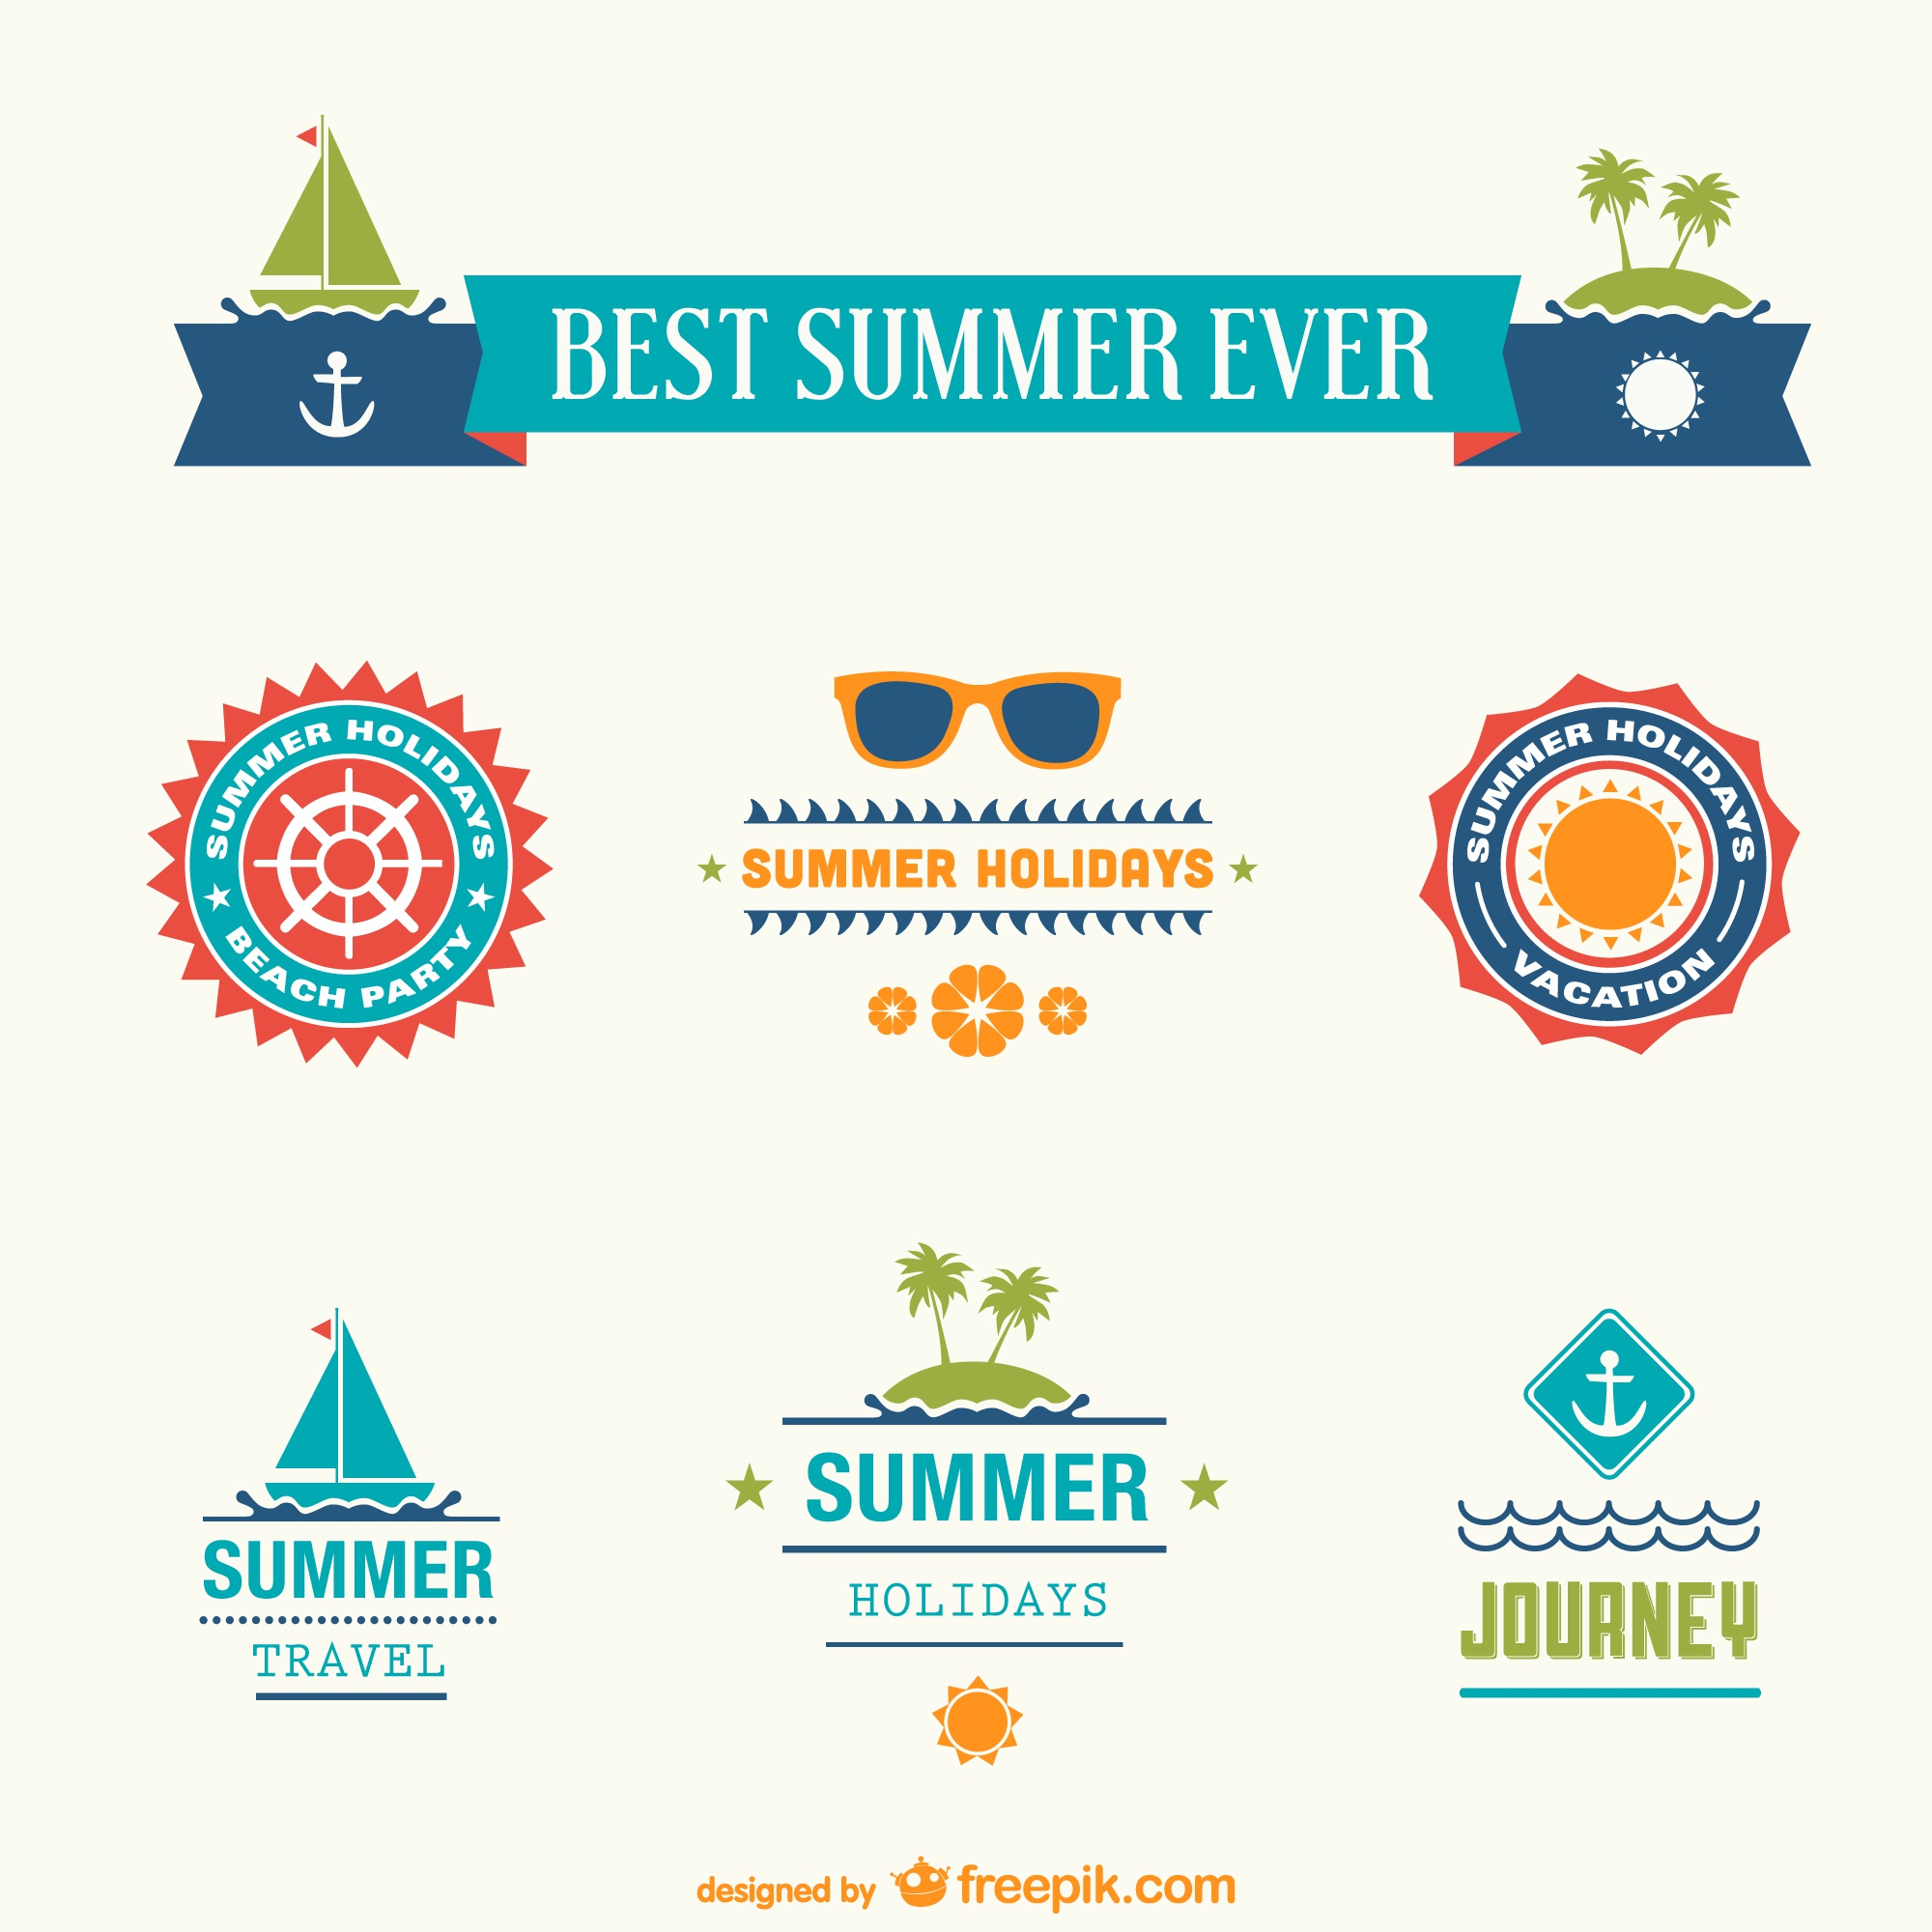 Best summer ever badges set